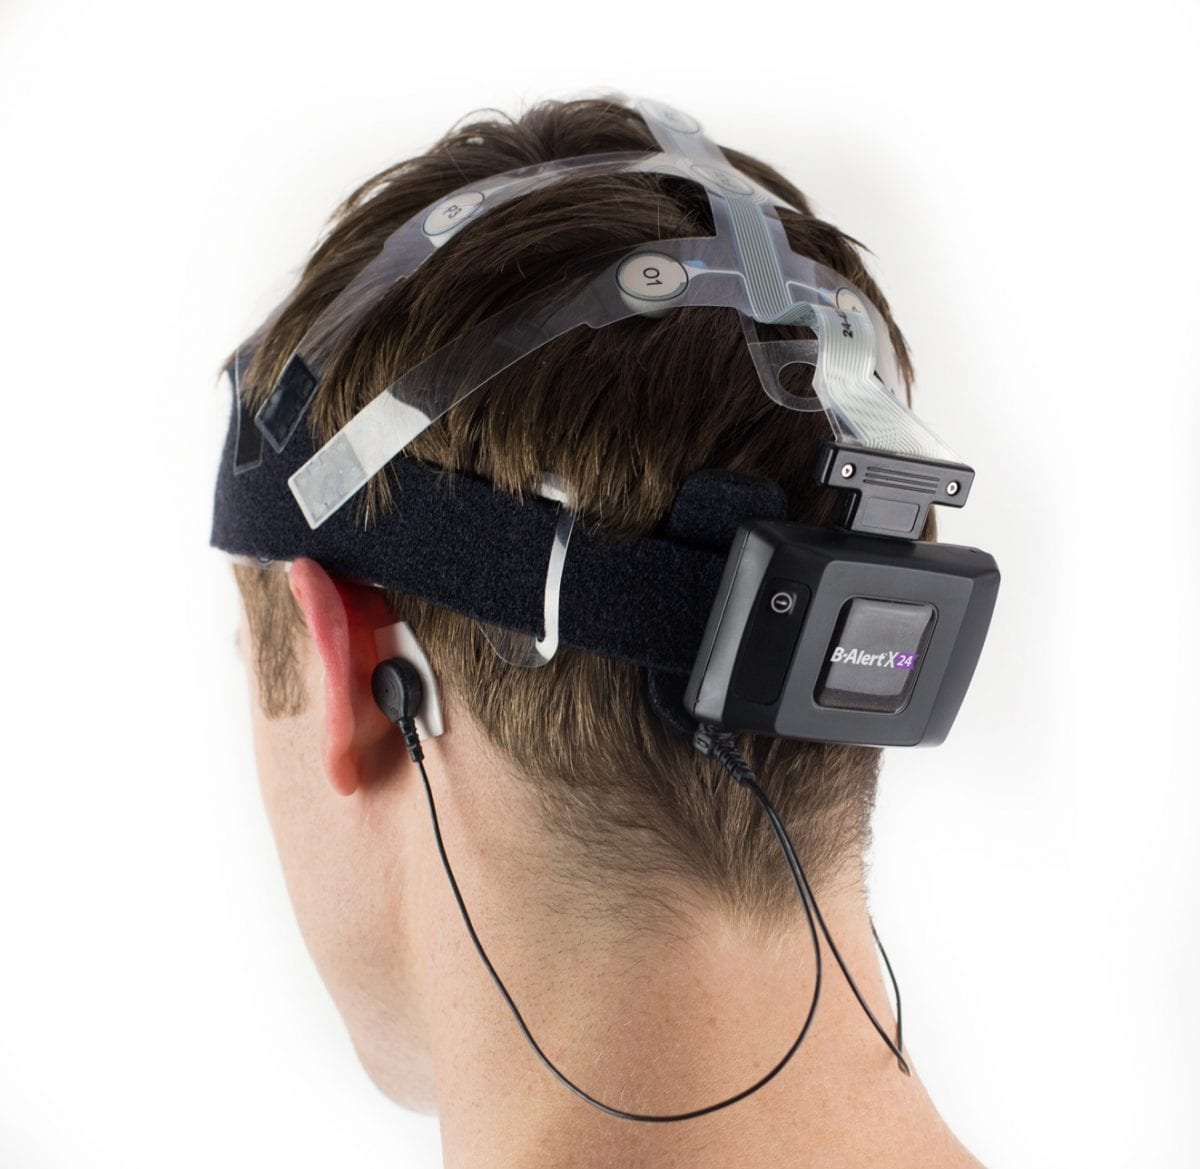 ABM B-Alert X24 EEG Headset on model